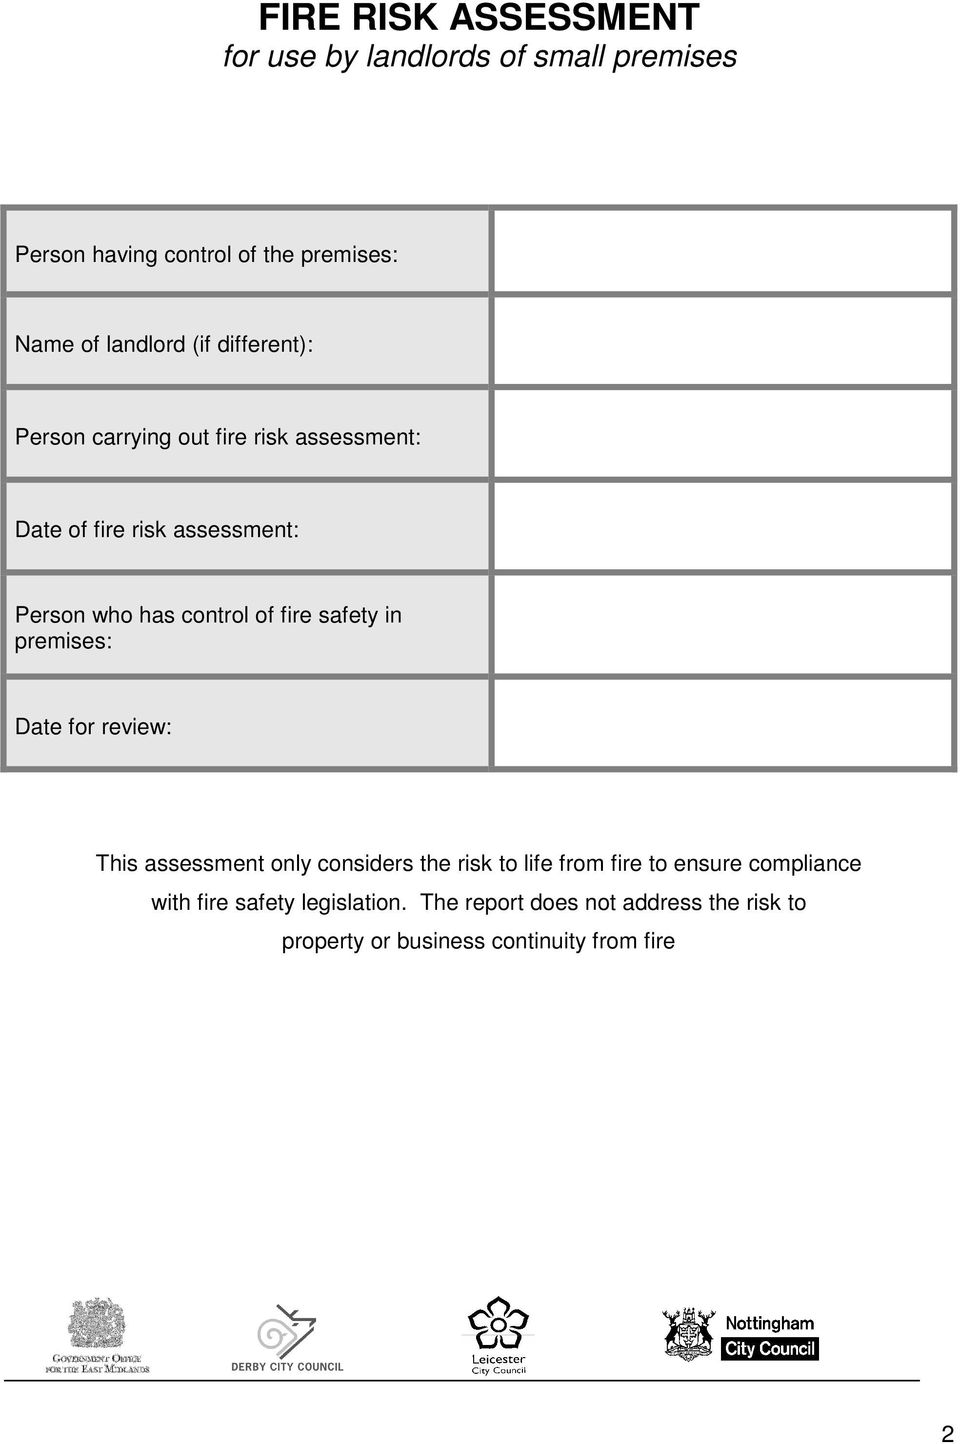 fire safety in premises: Date for review: This assessment only considers the risk to life from fire to ensure